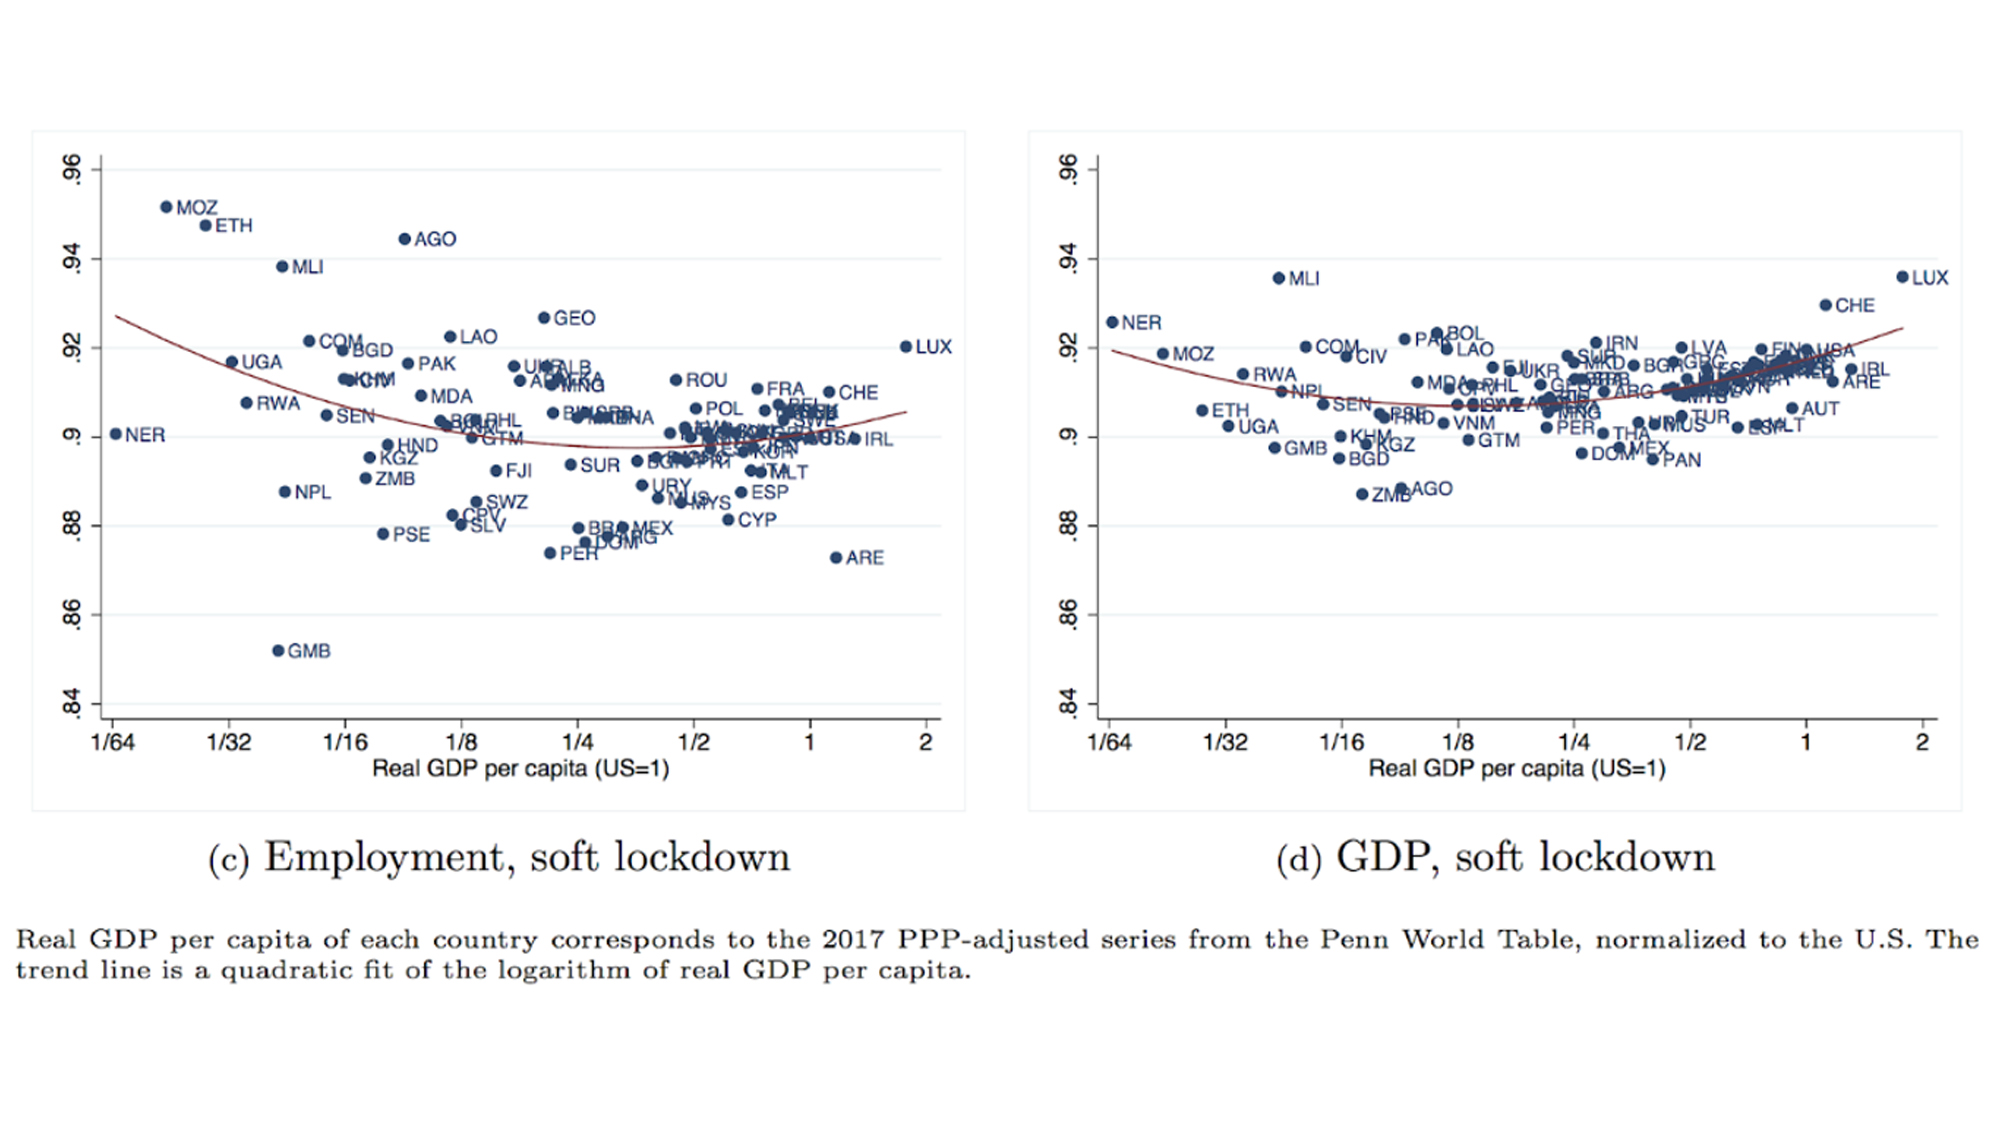 Employment and GDP by lockdown scenario, relative to pre-trend